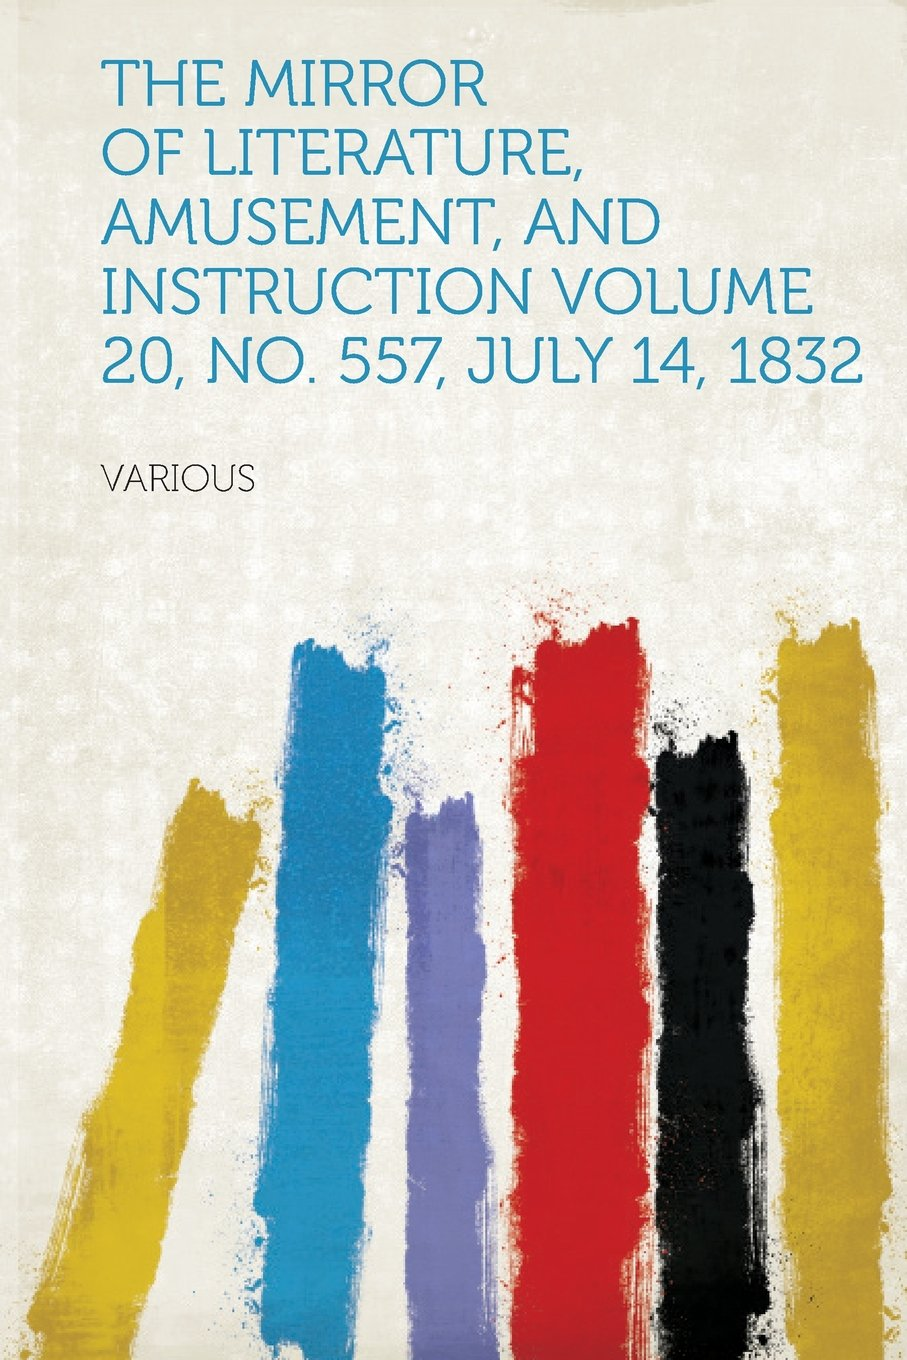 Download The Mirror of Literature, Amusement, and Instruction Volume 20, No. 557, July 14, 1832 PDF